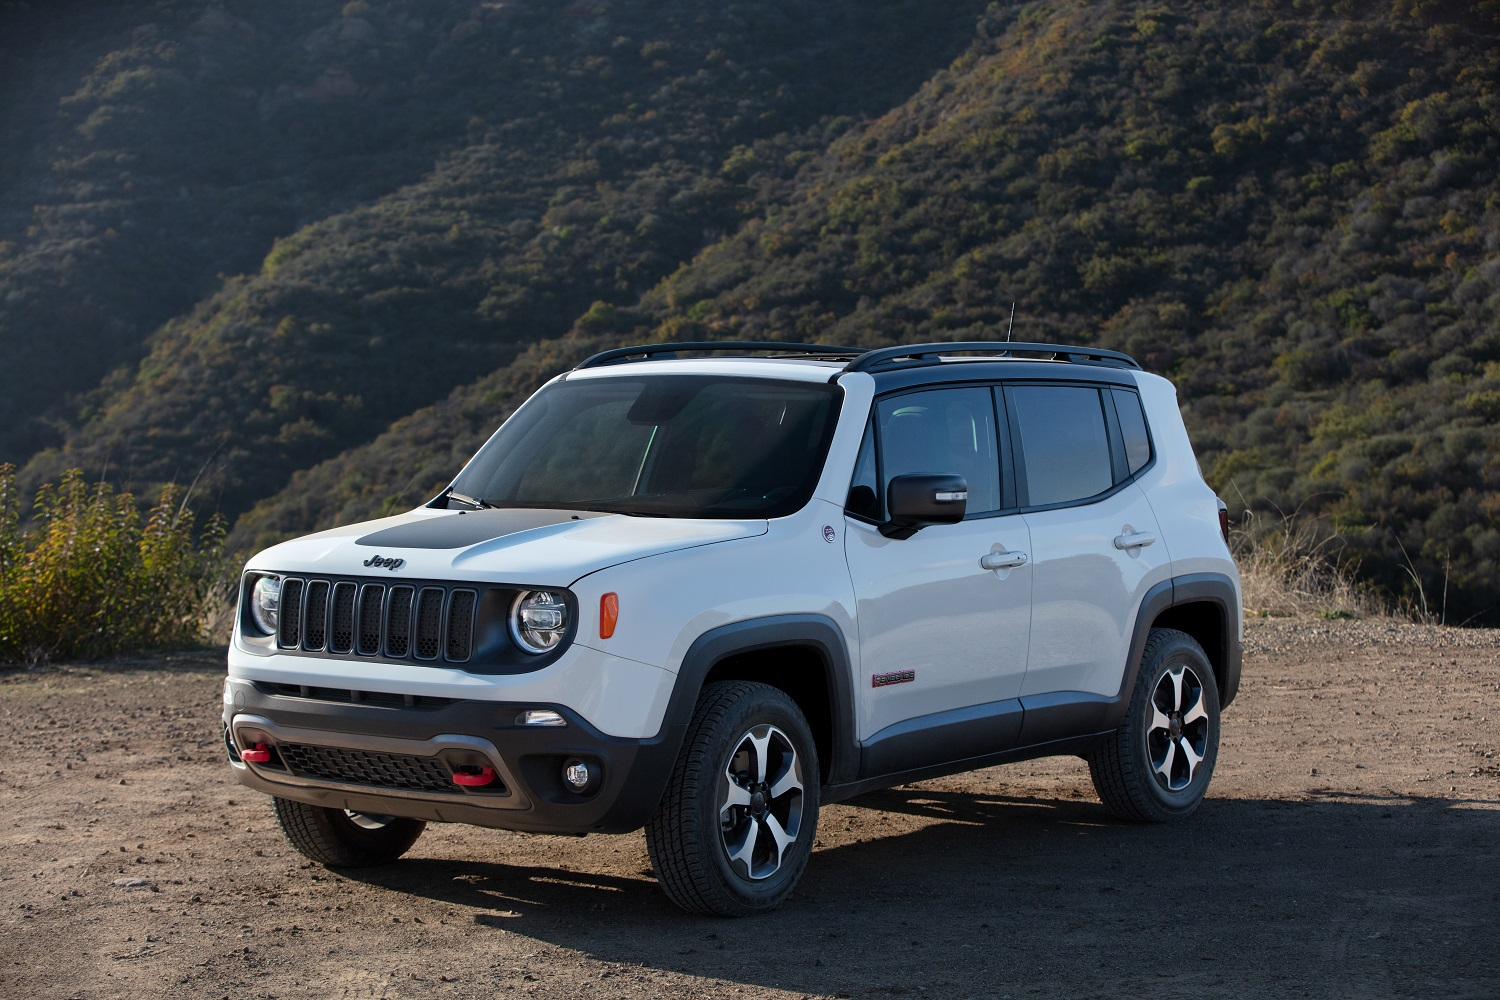 Jeep Renegade Lease In Columbus Oh Performance Cjdr